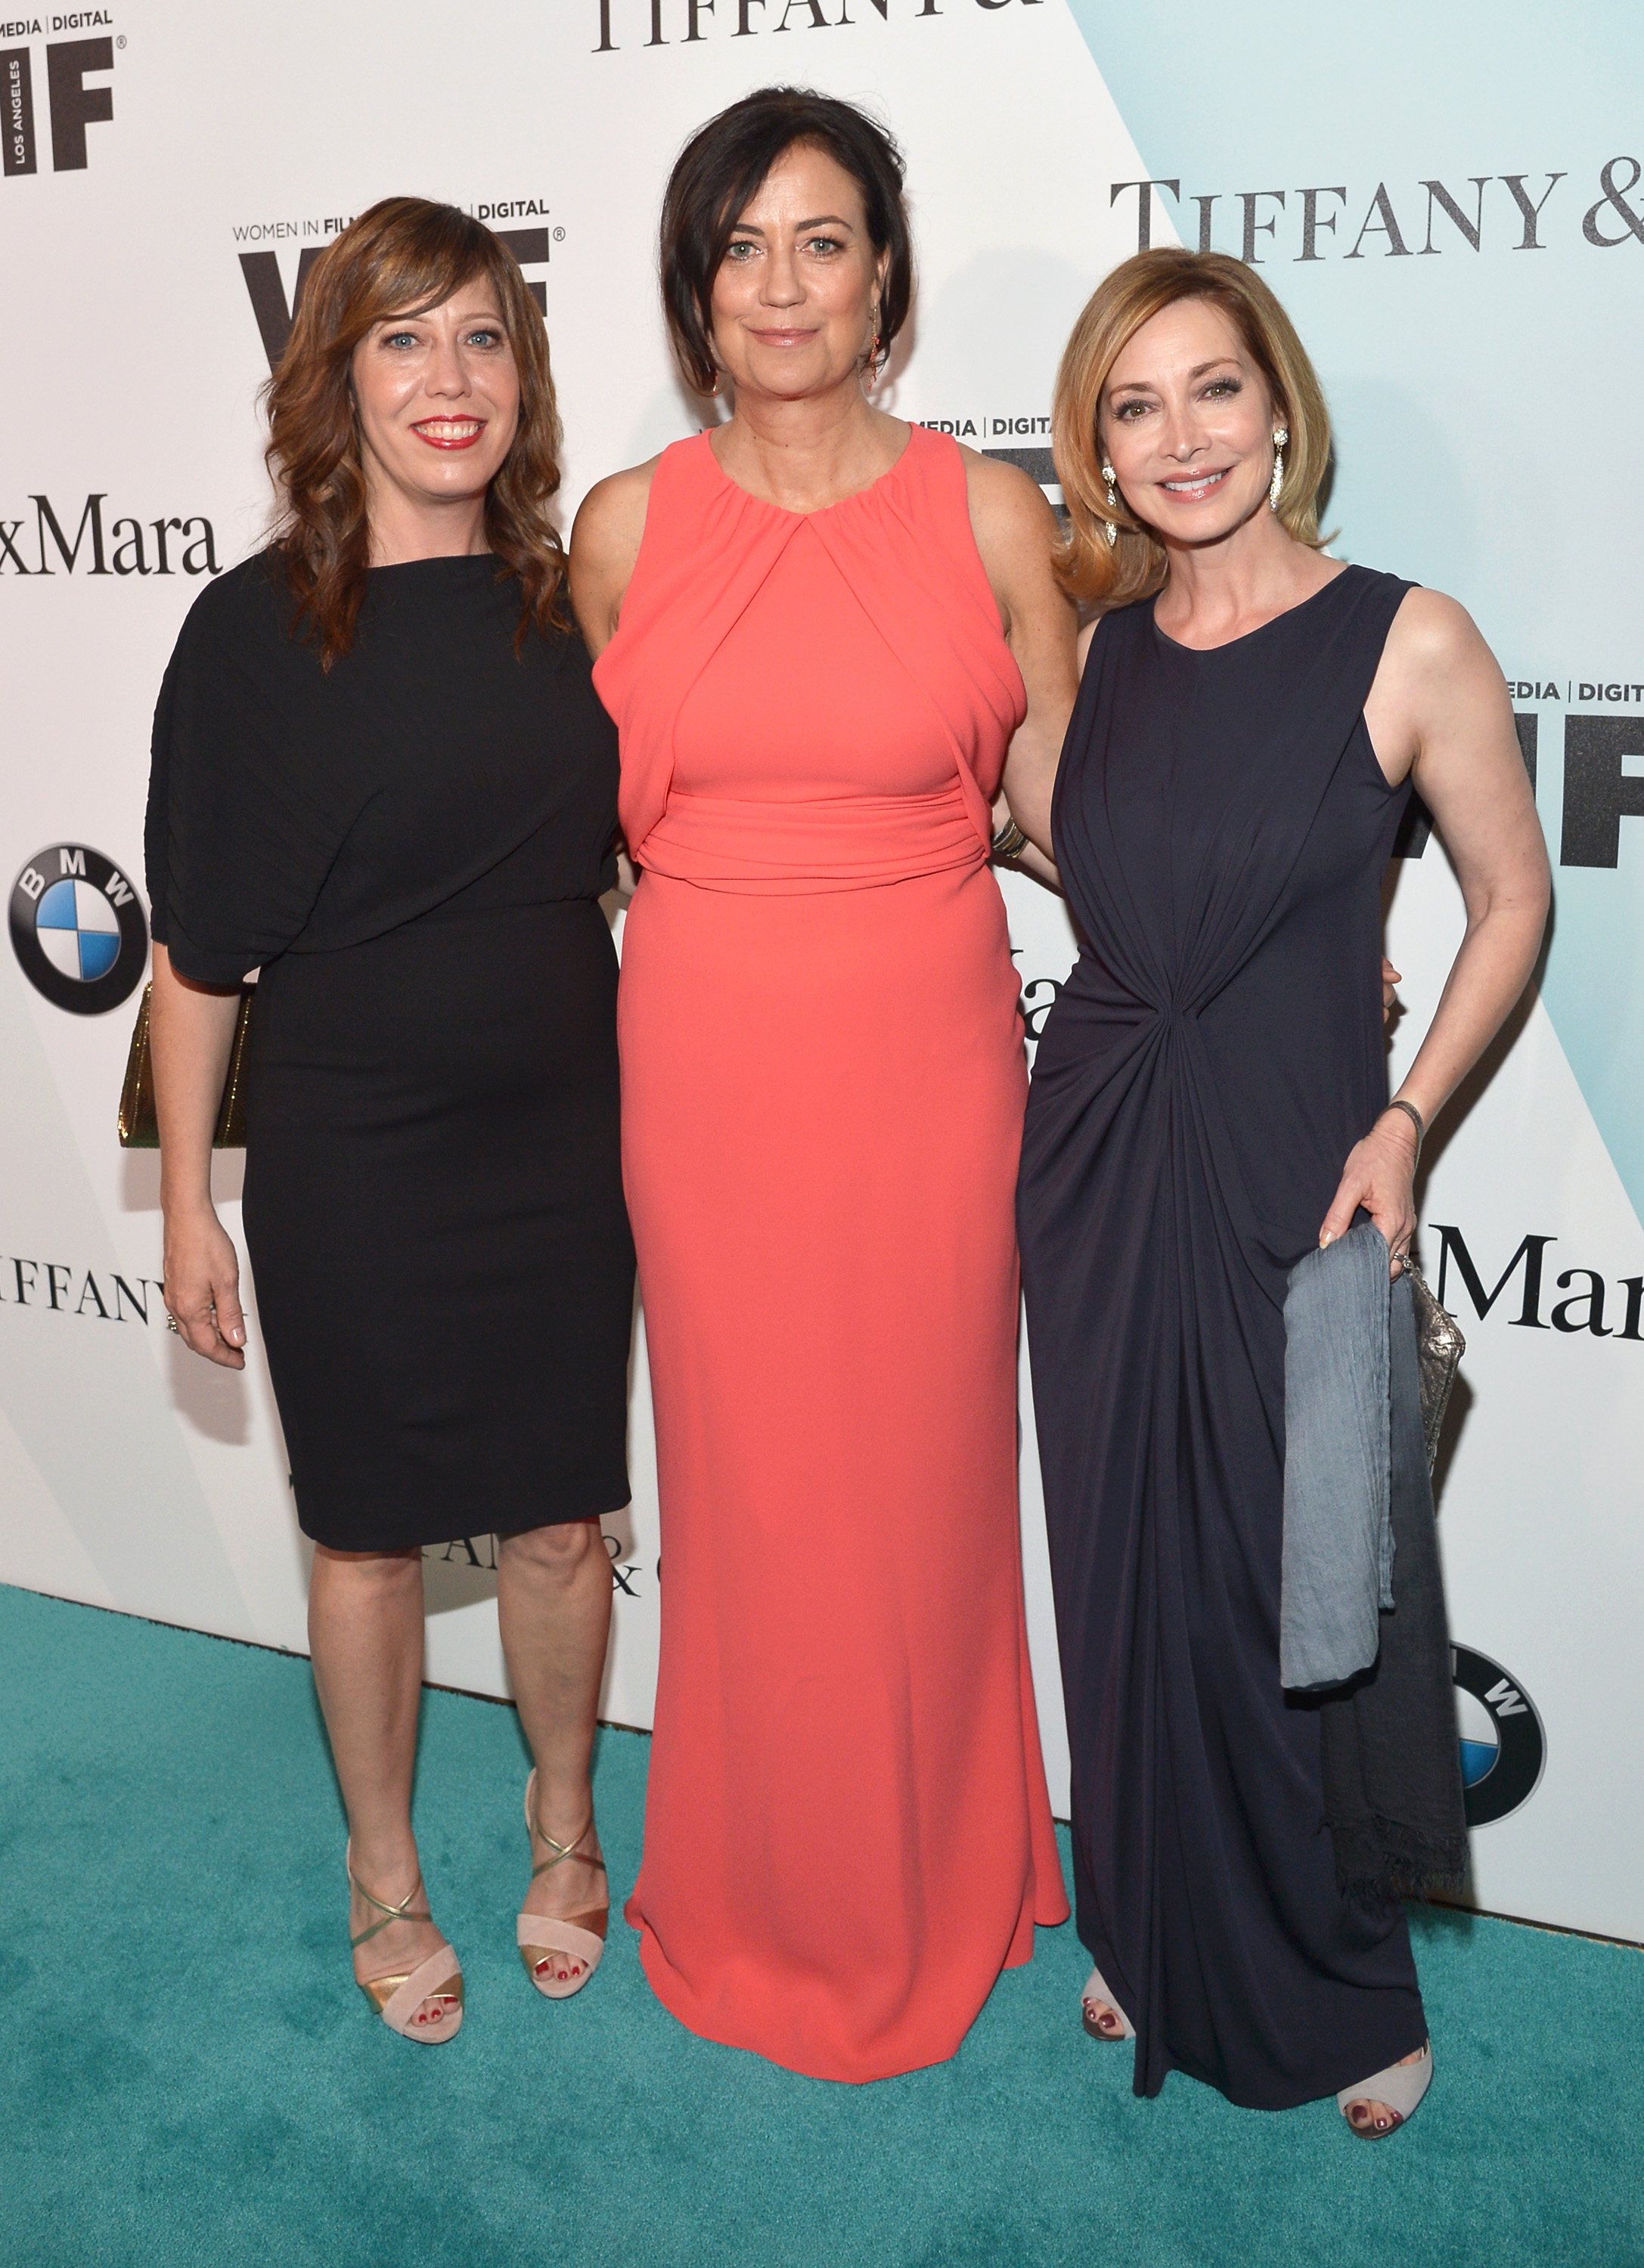 CENTURY CITY, CA - JUNE 16: (L-R) Executive Director of Women In Film, LA Kirsten Schaffer,  president emeritus, Women In Film LA and event co-chair Jane Fleming and actress Sharon Lawrence attend the Women In Film 2015 Crystal + Lucy Awards Presented by Max Mara, BMW of North America, and Tiffany & Co. at the Hyatt Regency Century Plaza on June 16, 2015 in Century City, California.  (Photo by Charley Gallay/Getty Images for Women In Film)